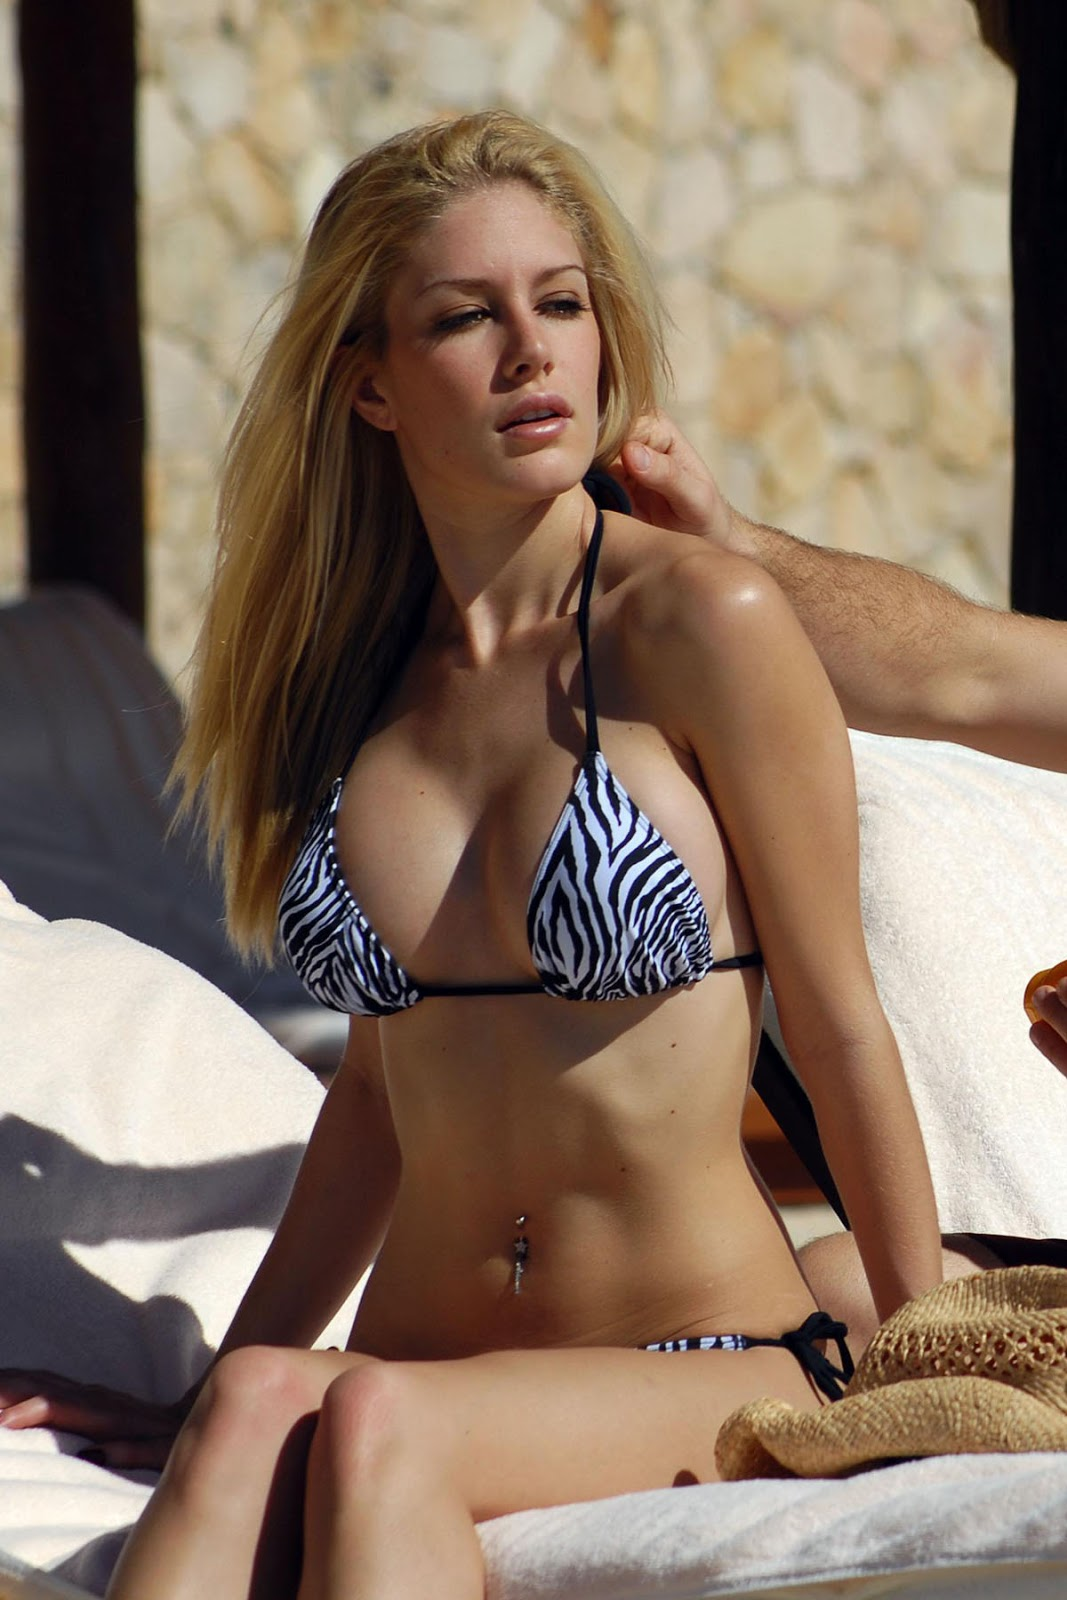 Pussy Heidi Montag nude (71 foto and video), Topless, Fappening, Twitter, swimsuit 2006